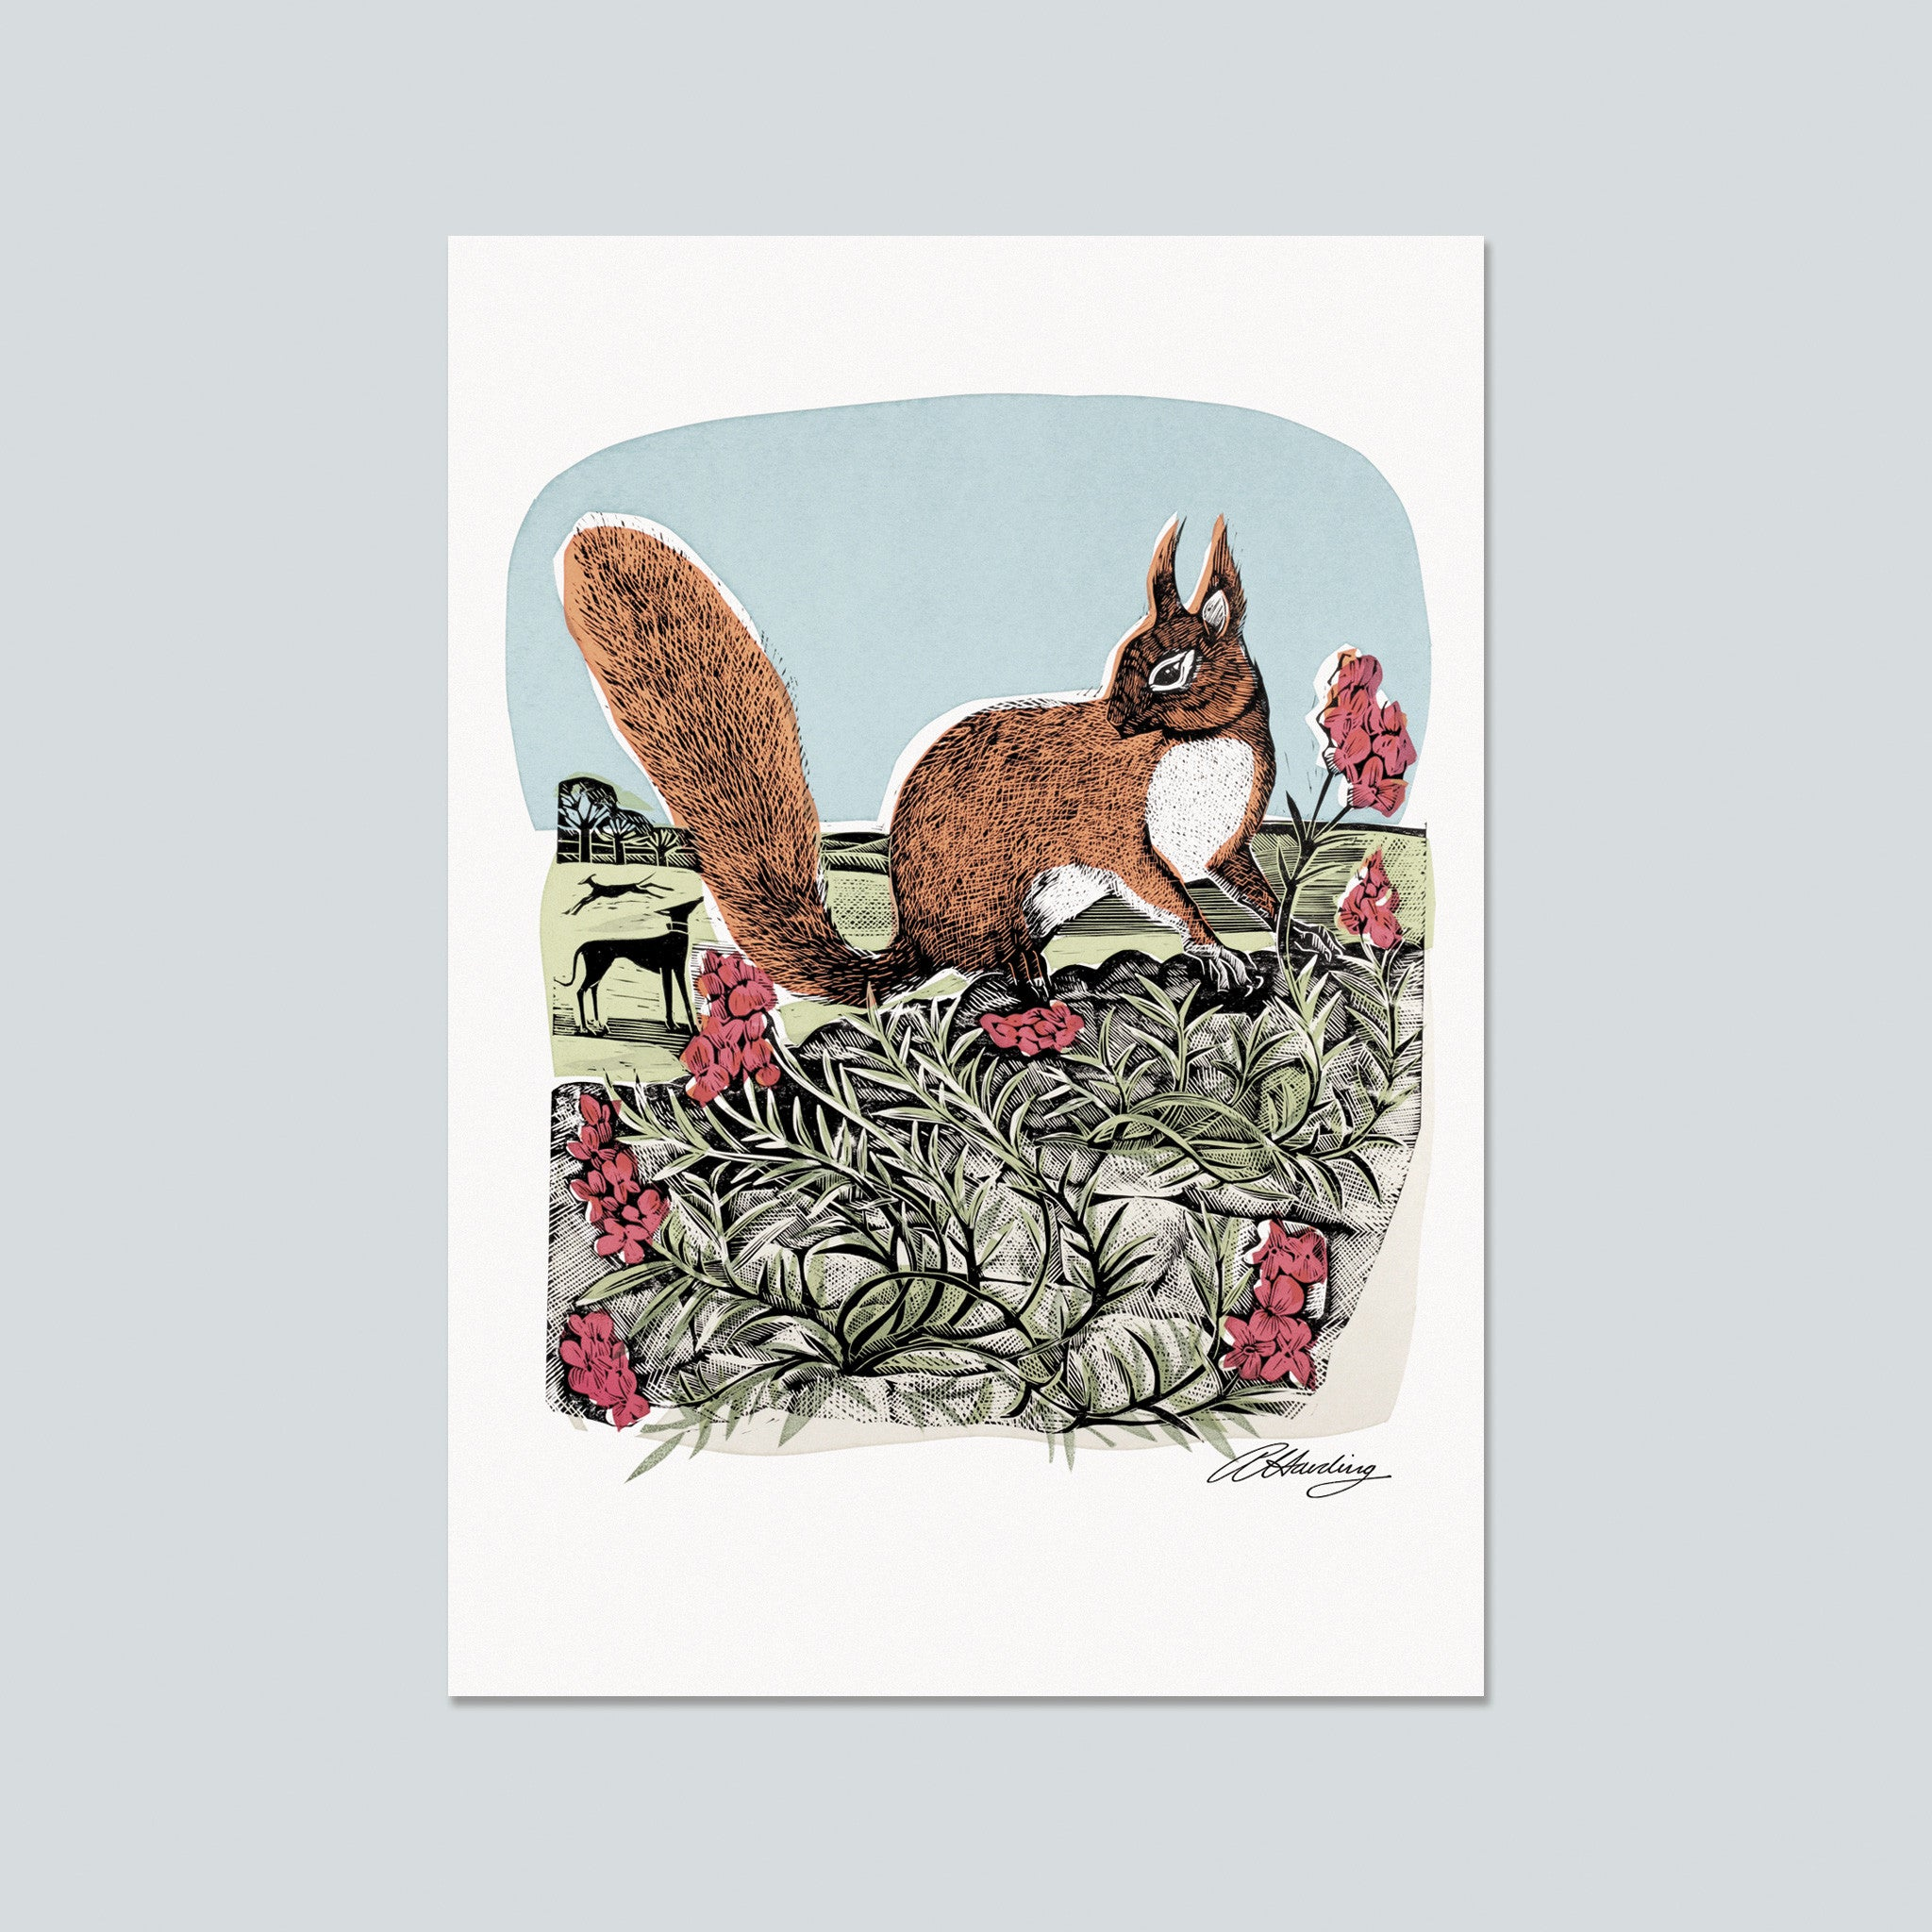 Red Squirrel and Wall Flower Postcards - Angela Harding  - 4